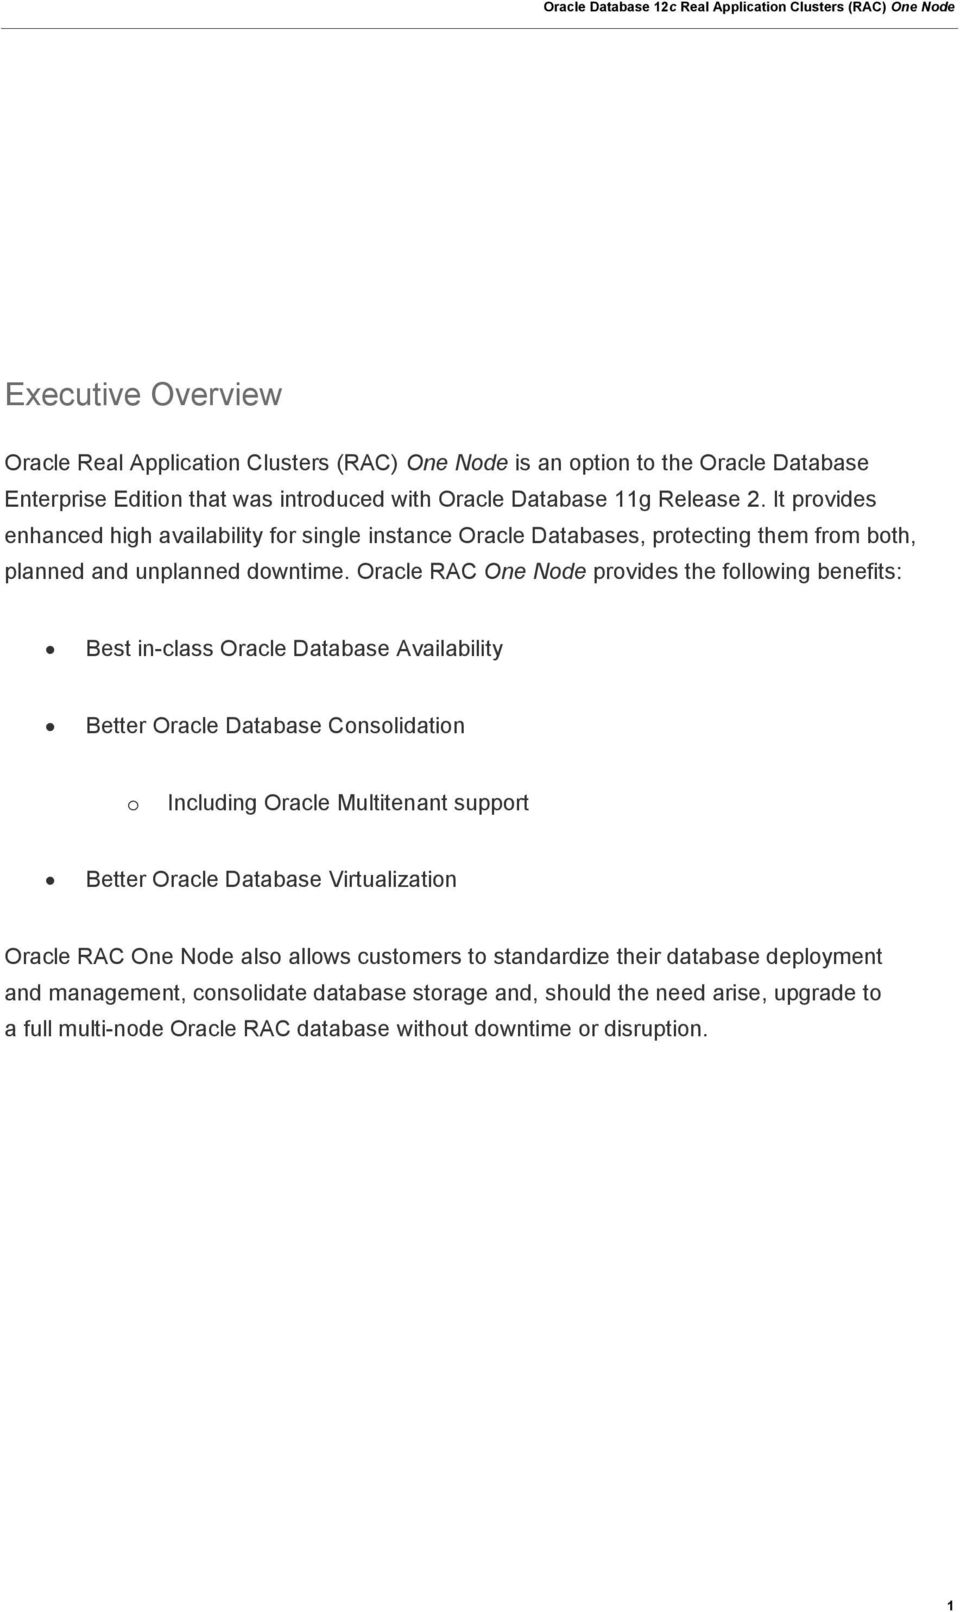 Oracle RAC One Node provides the following benefits: Best in-class Oracle Database Availability Better Oracle Database Consolidation o Including Oracle Multitenant support Better Oracle